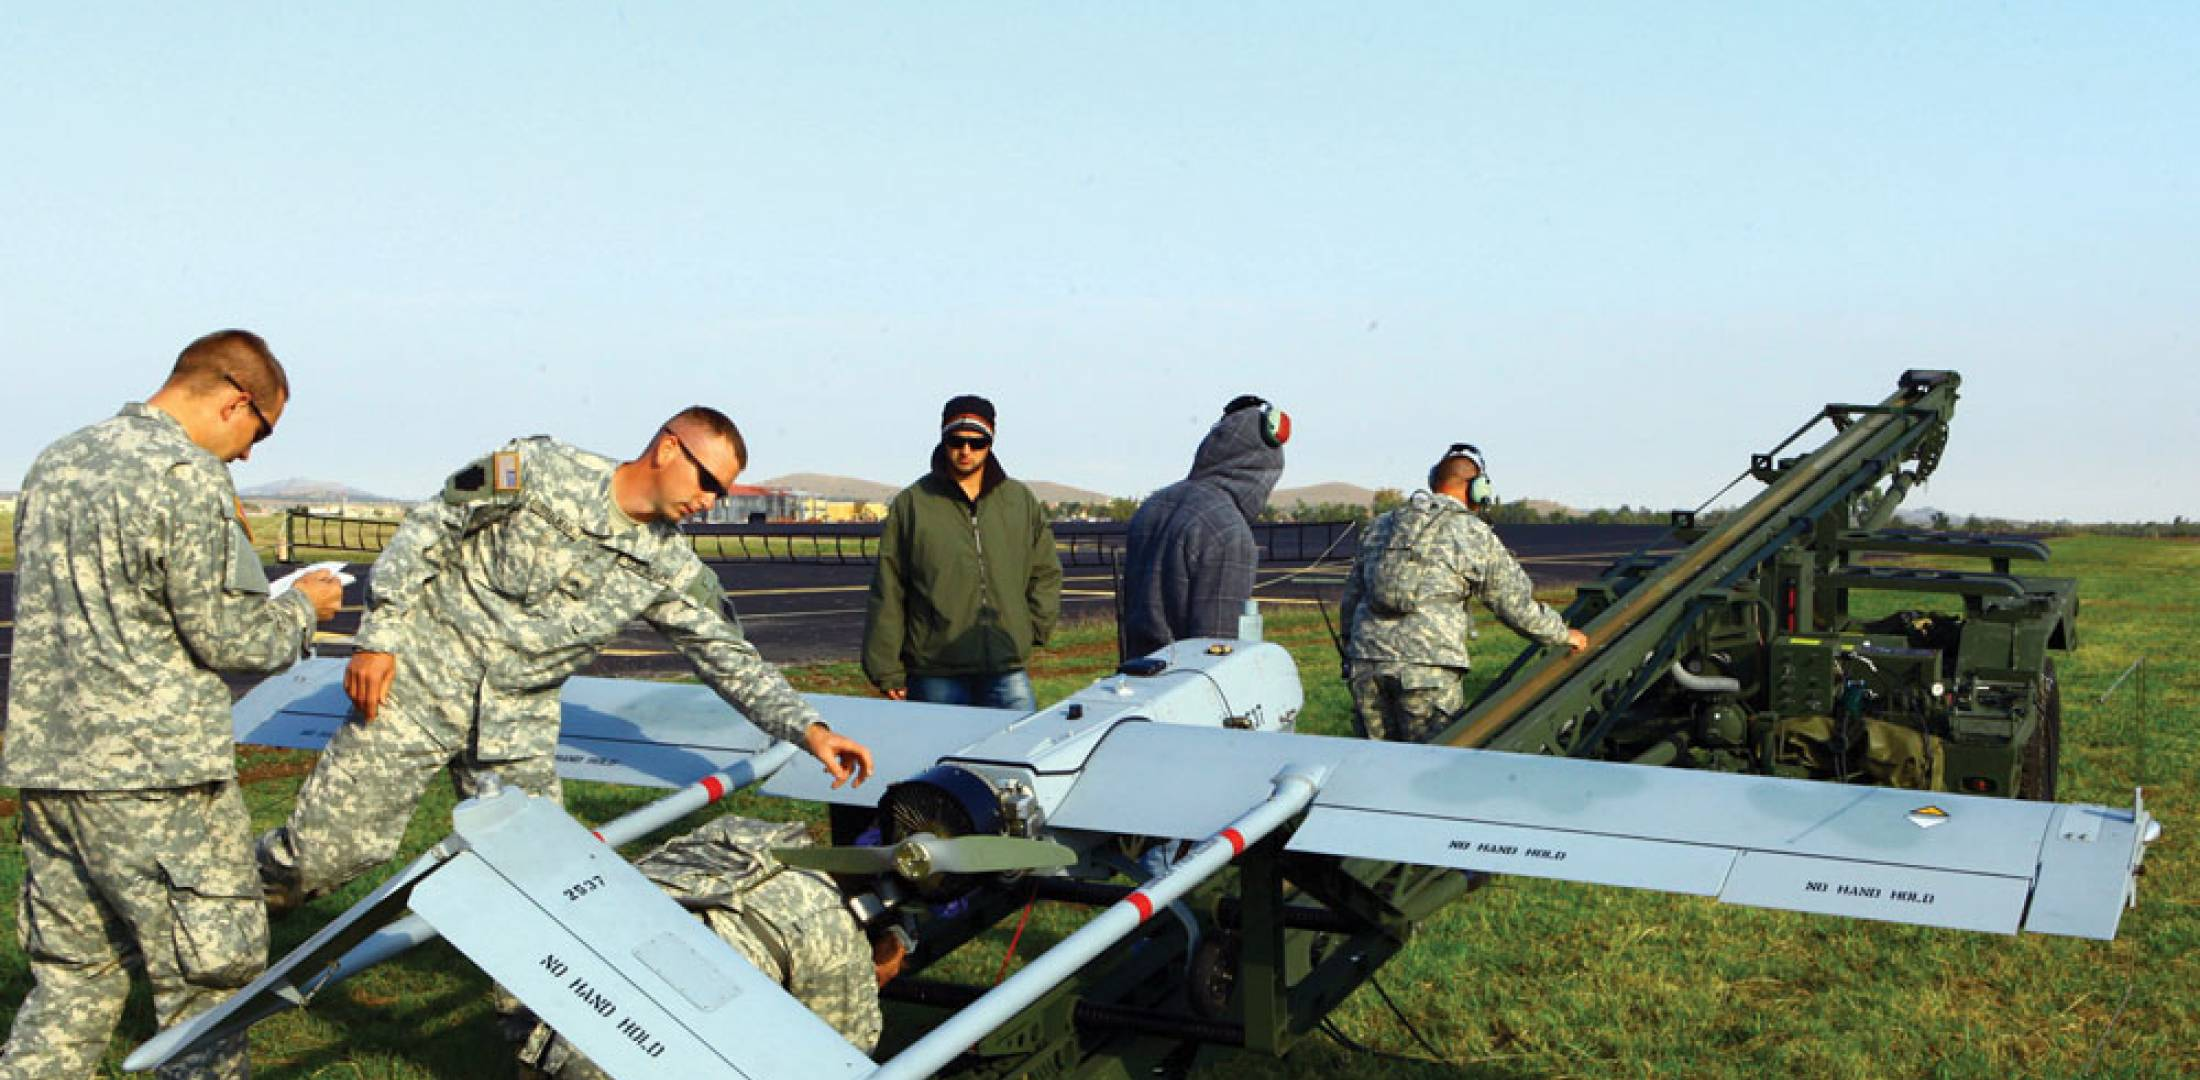 Oklahoma Army National Guard soldiers prepare a Textron AAI Corporation RQ-7B Shadow for launch from a pneumatic catapult at Fort Sill, Oklahoma.